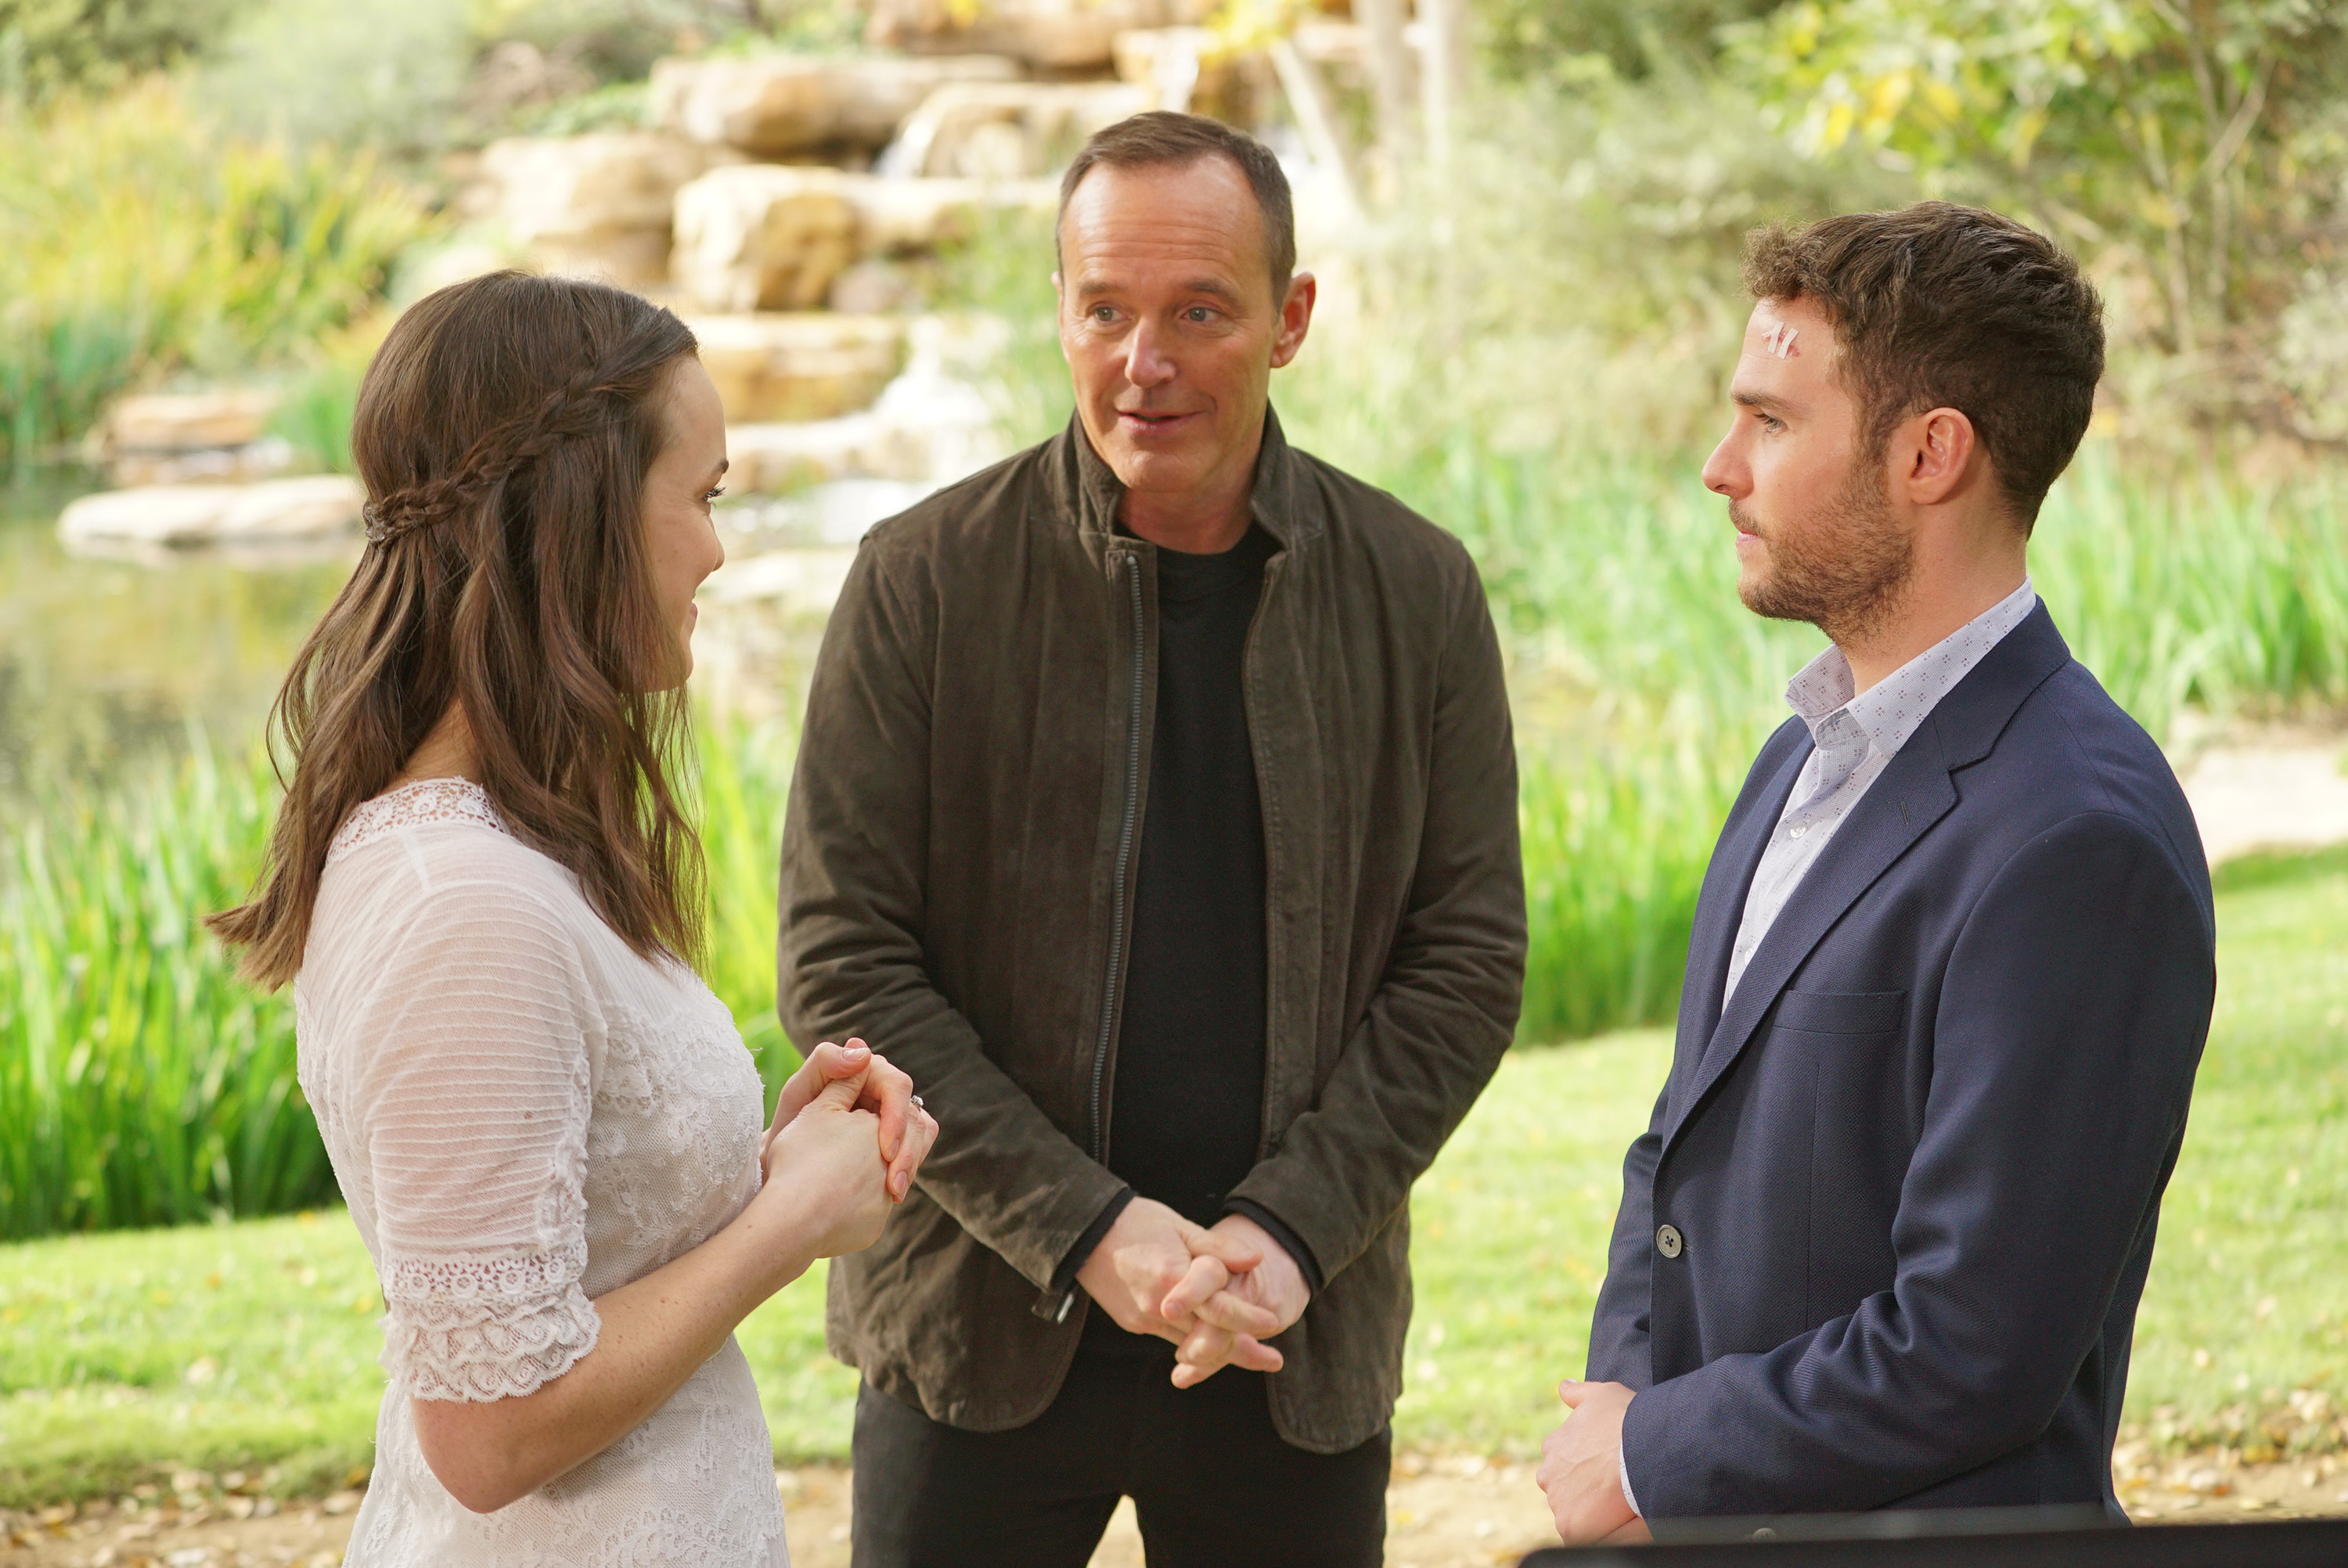 Marvel's Agents of S.H.I.E.L.D. Season 5 12